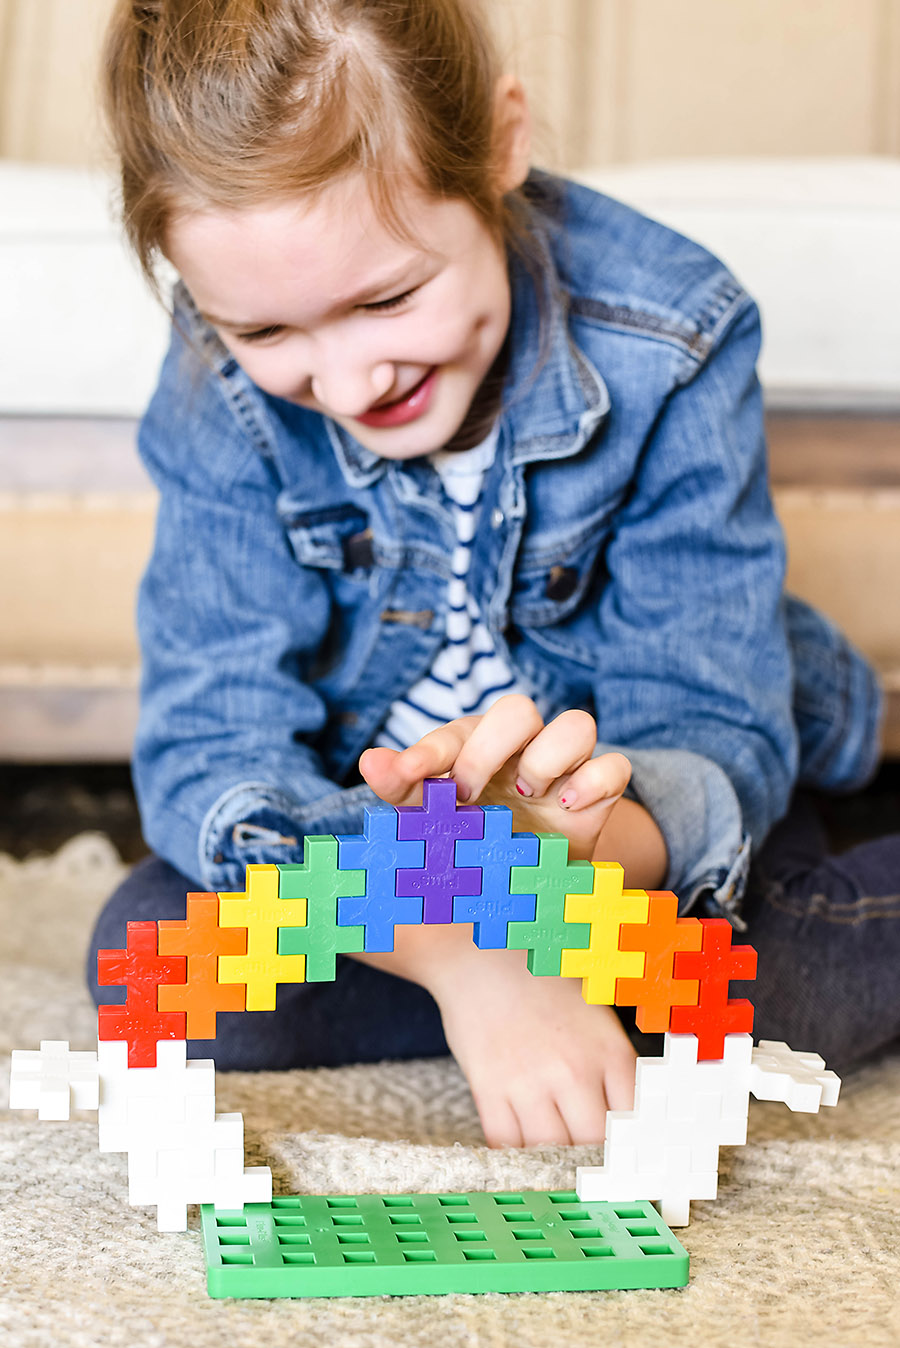 Plus Plus Big Learn to Build Set - Simple Toys Gift Ideas - Intentional Purposeful Gift Guide for Kids - Our Handcrafted Life